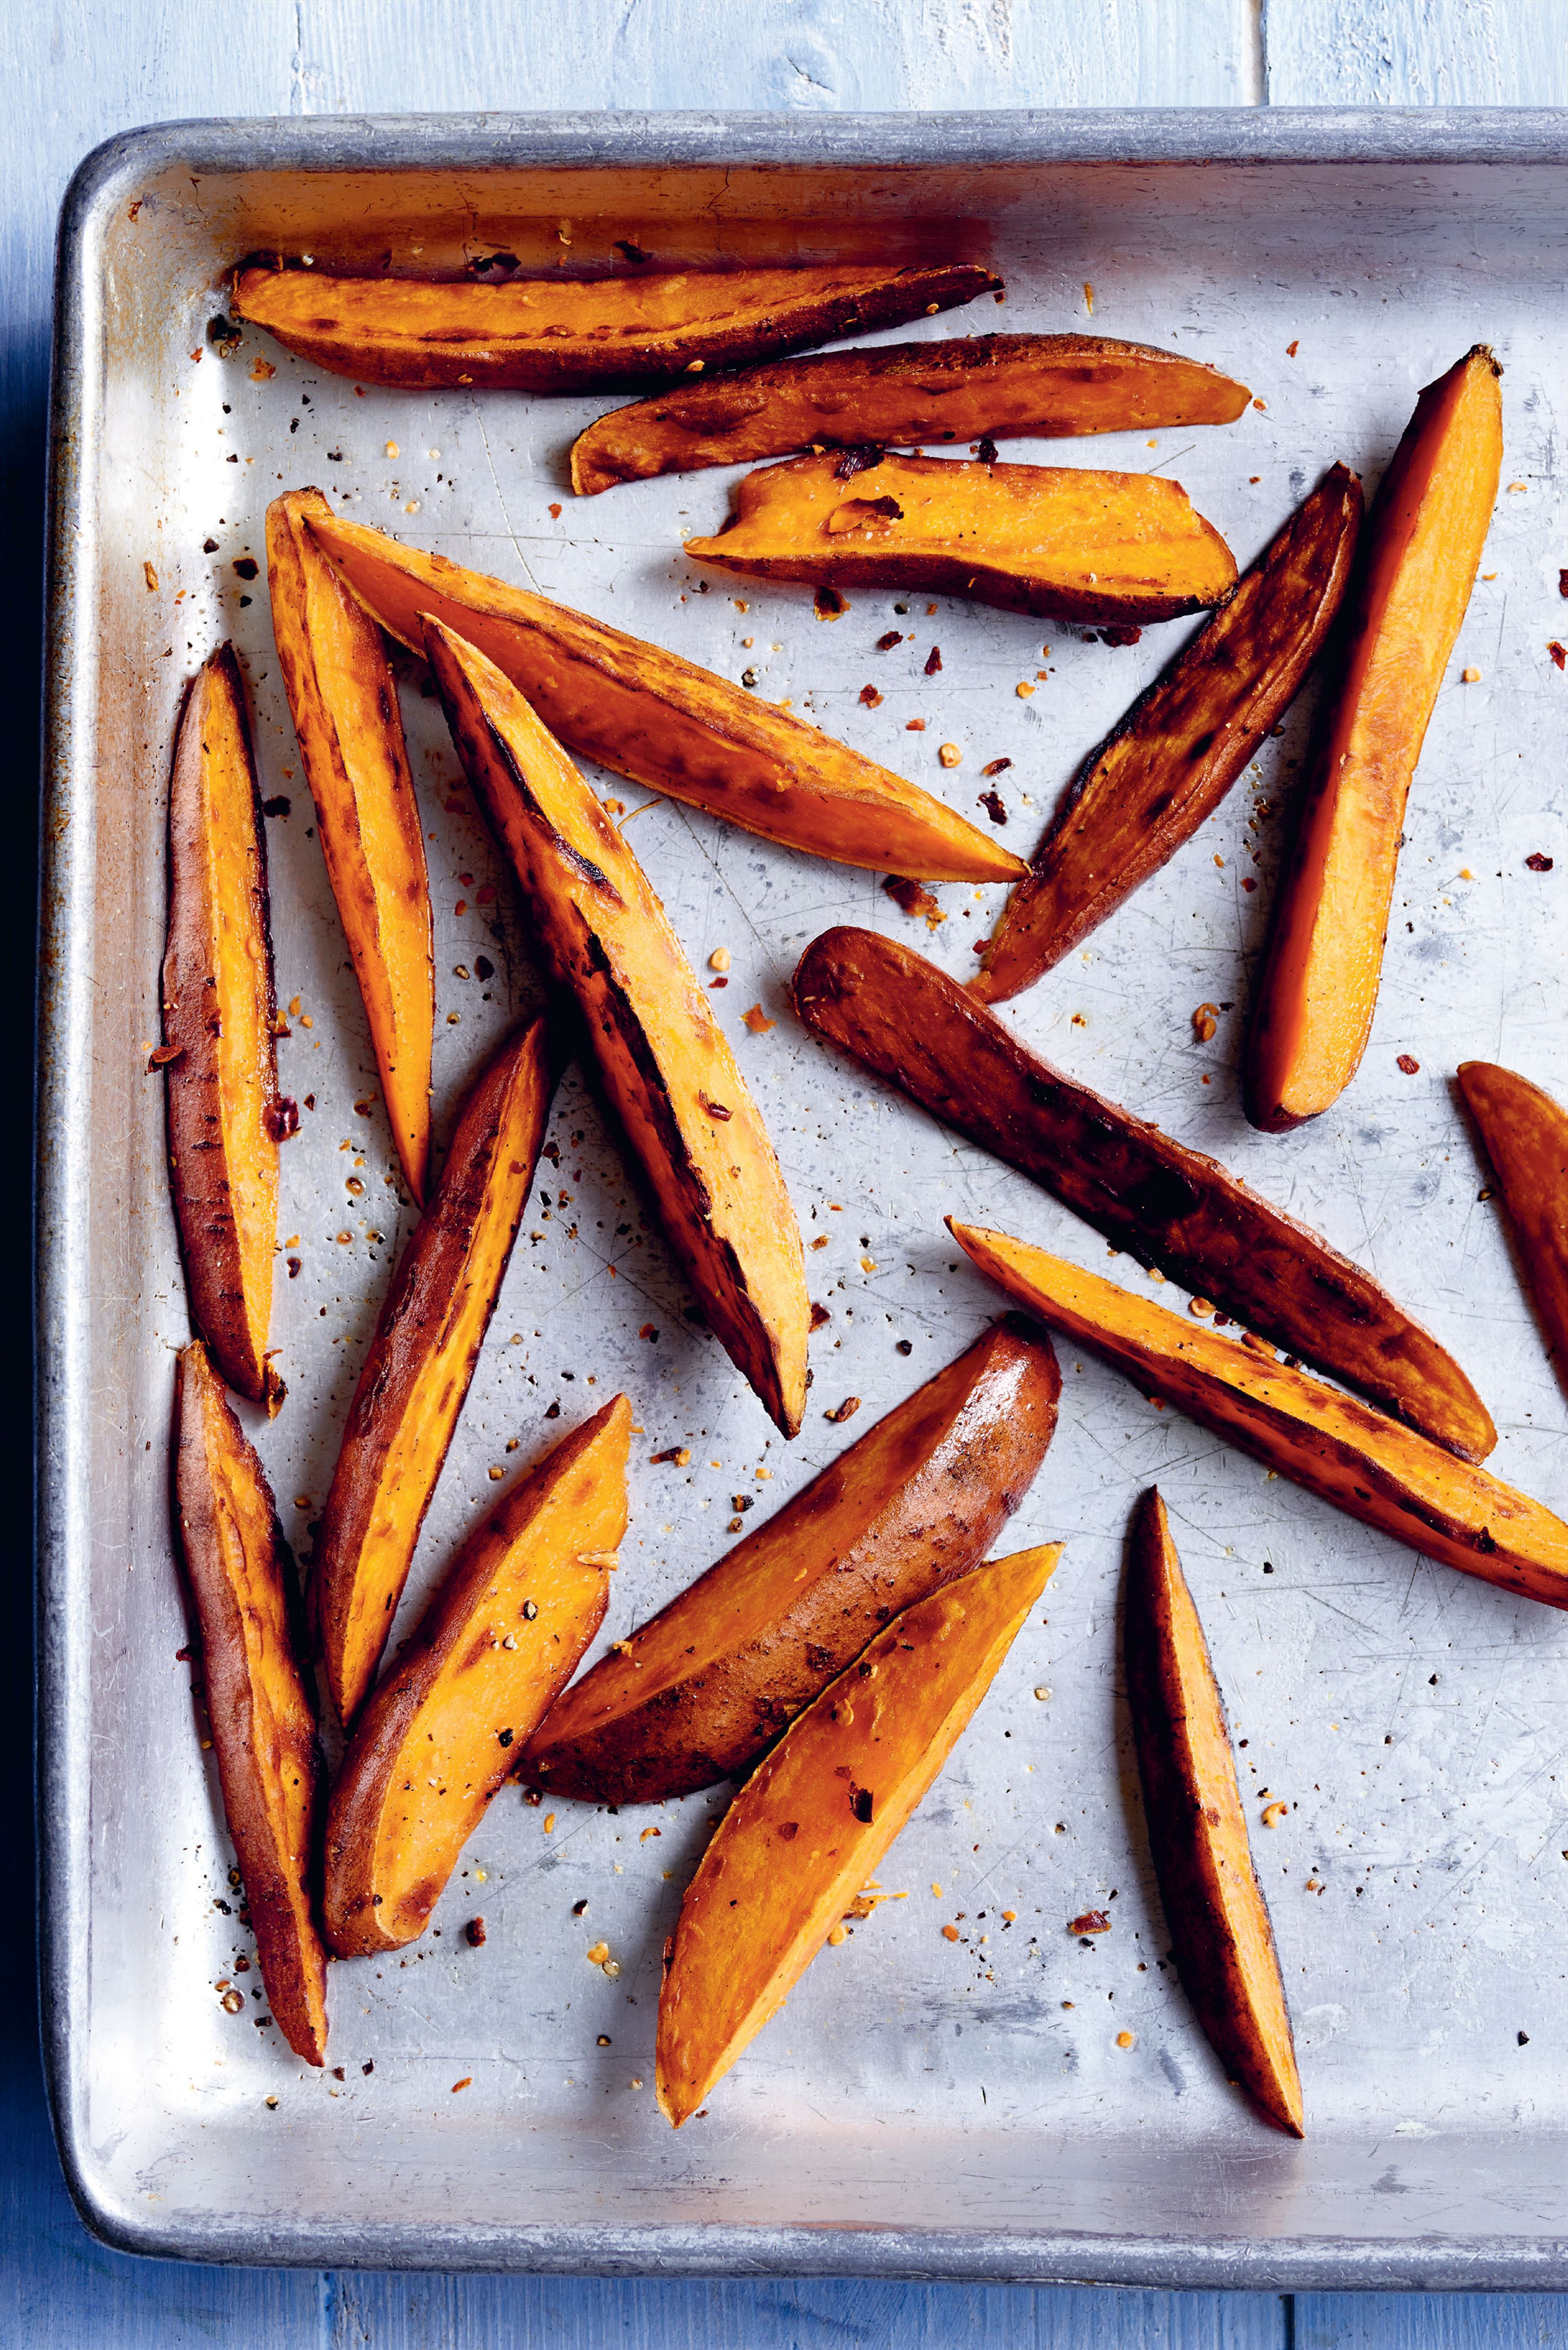 Roasted sweet potato wedges